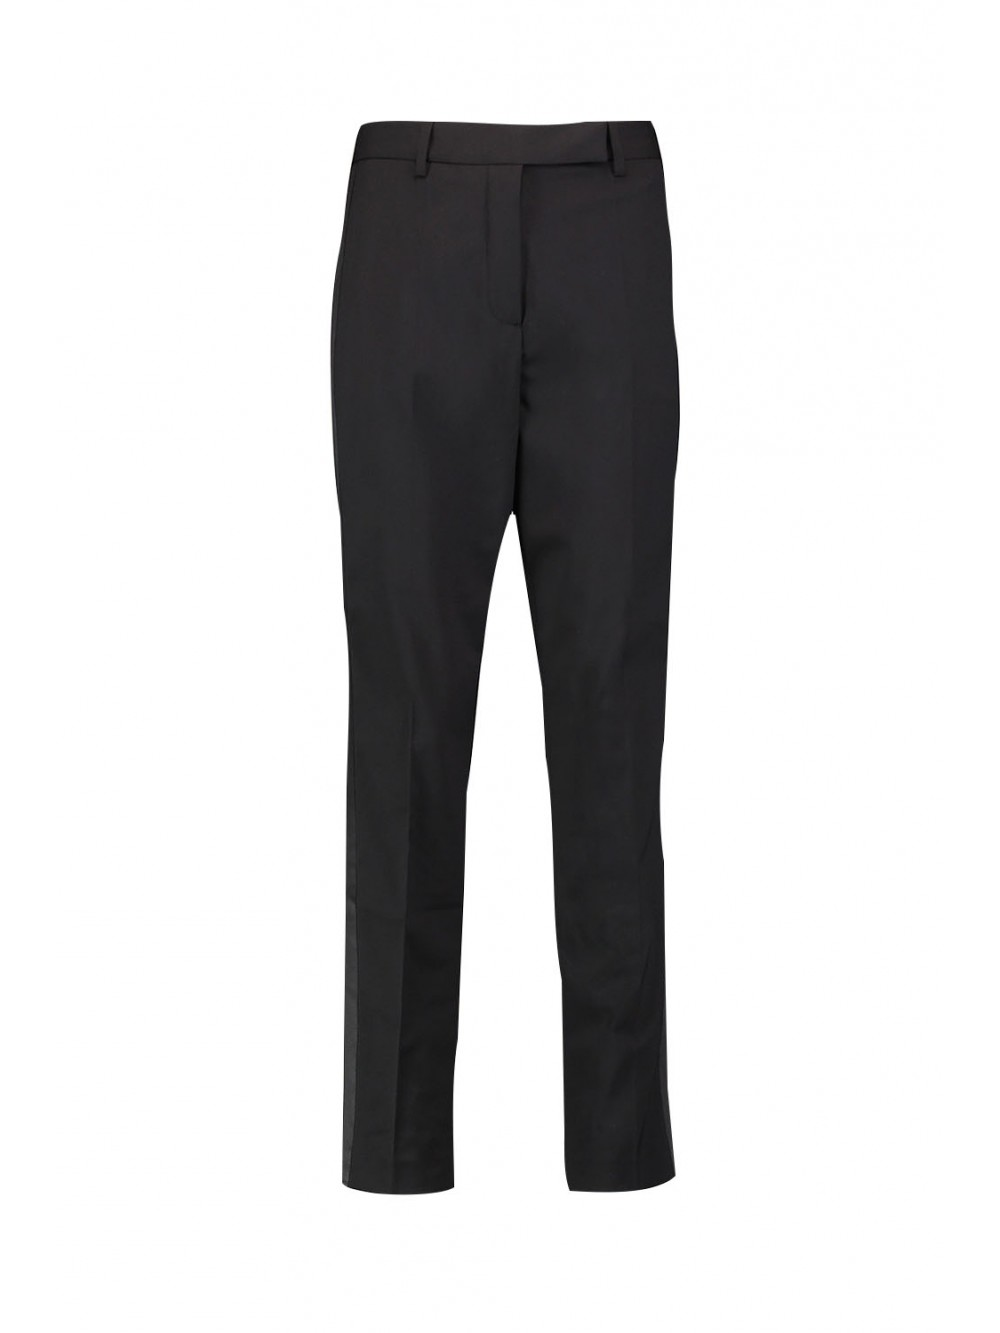 Matching satin trimmed blazer with split sleeves trousers | Isild